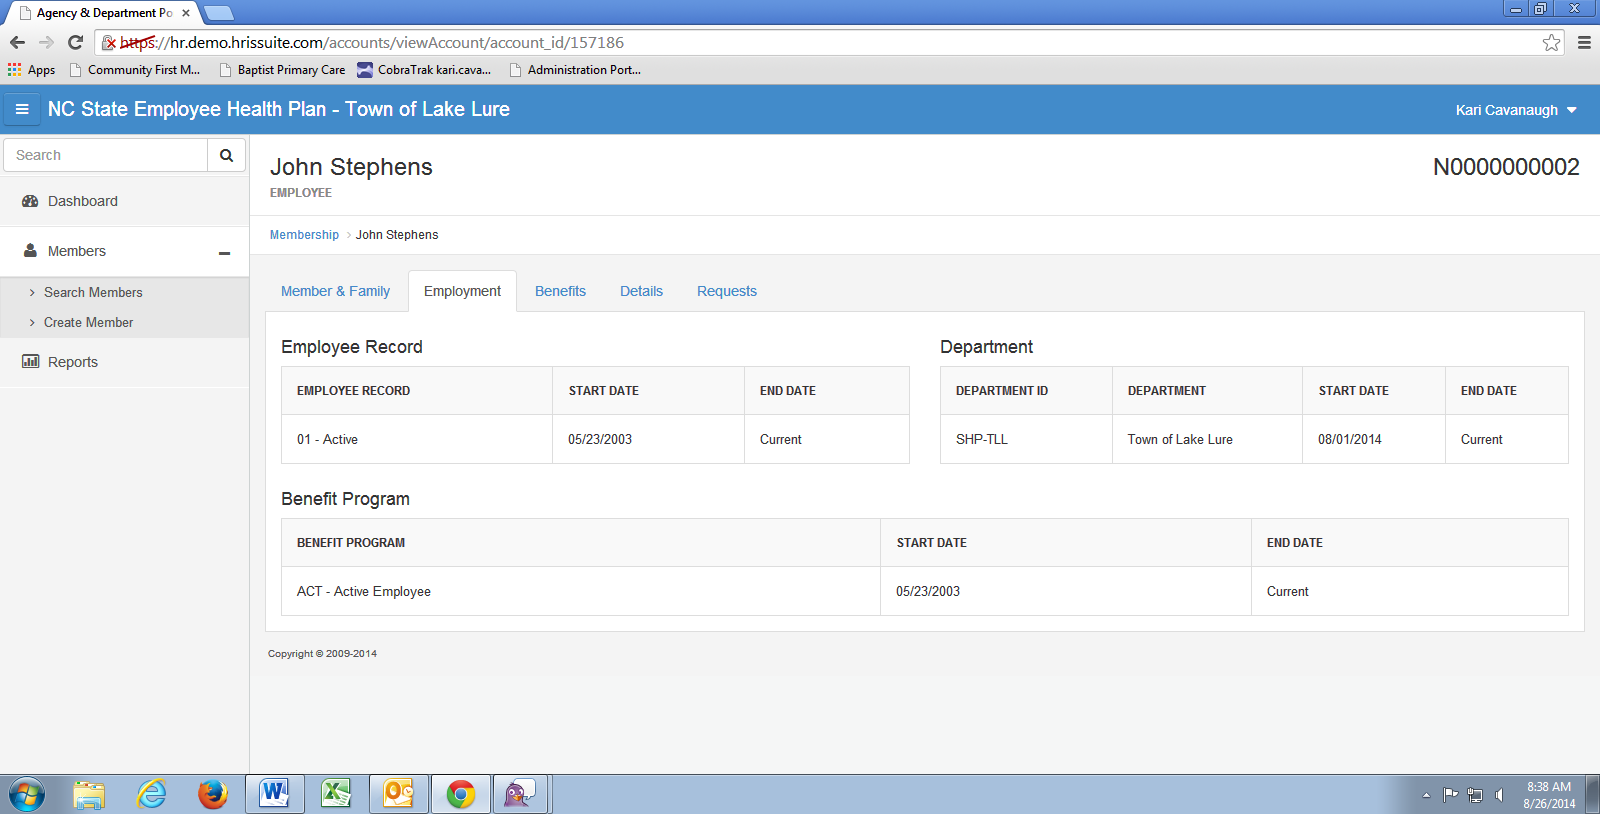 The Employment tab shows the selected employee s employment